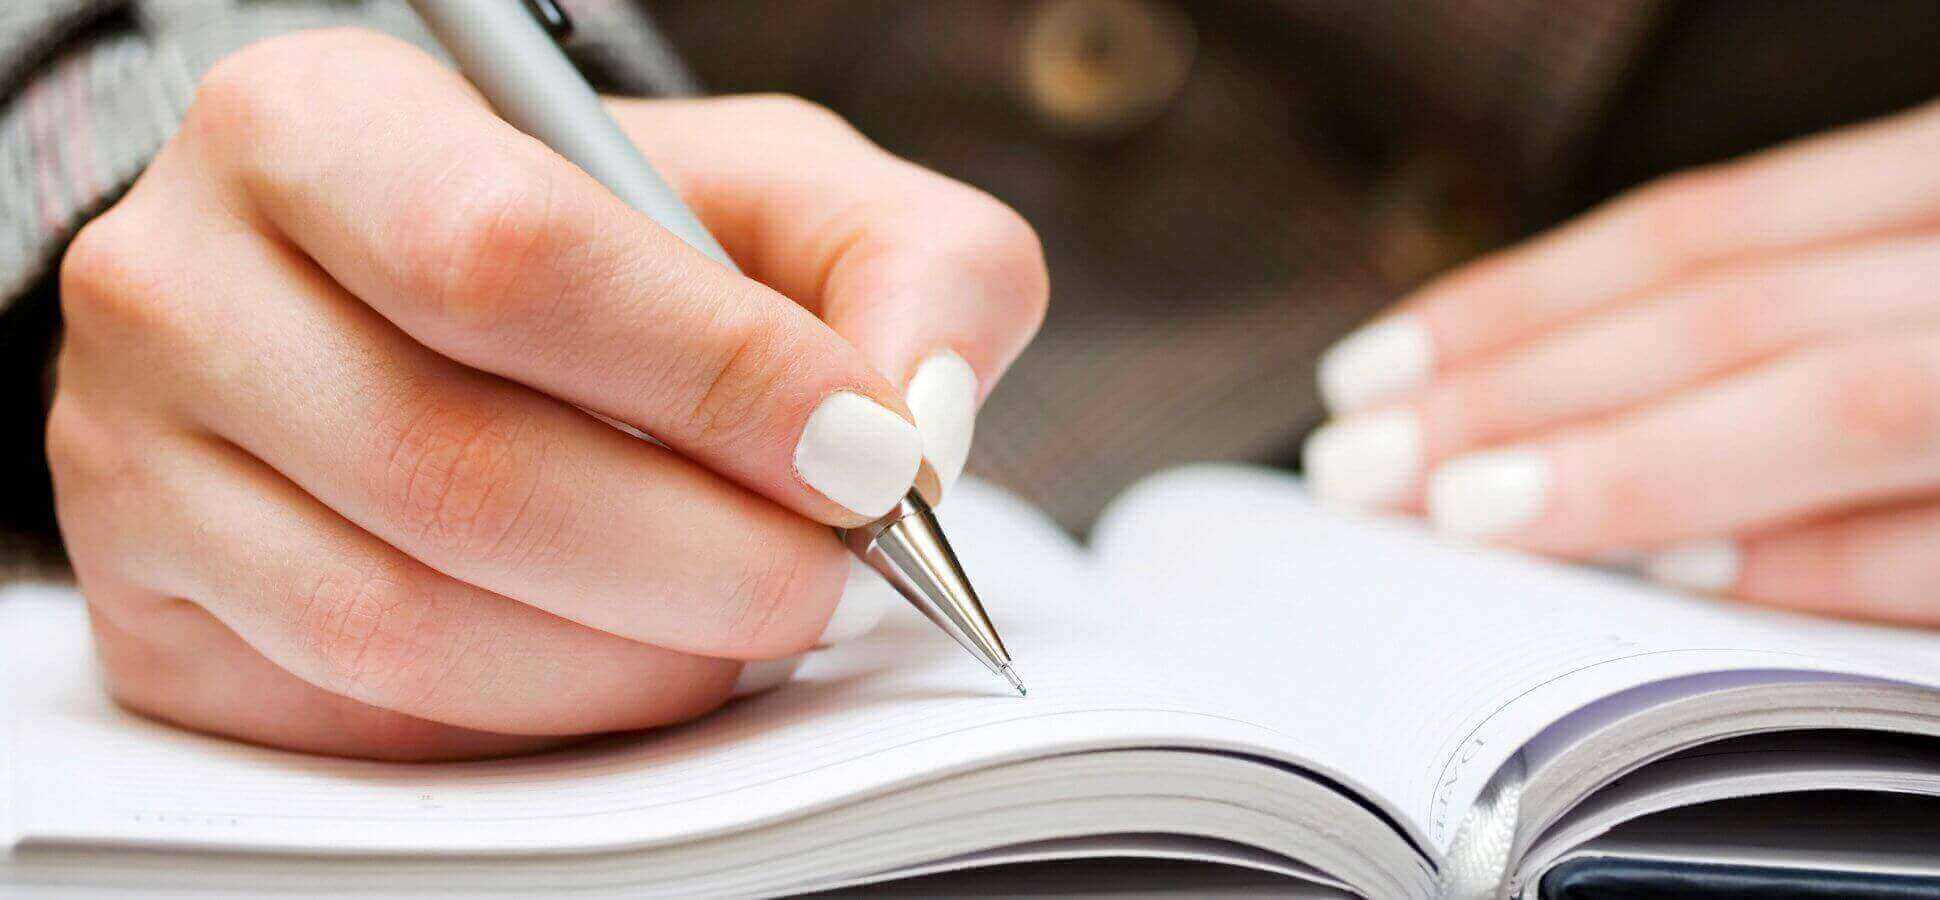 Technical manual writing services